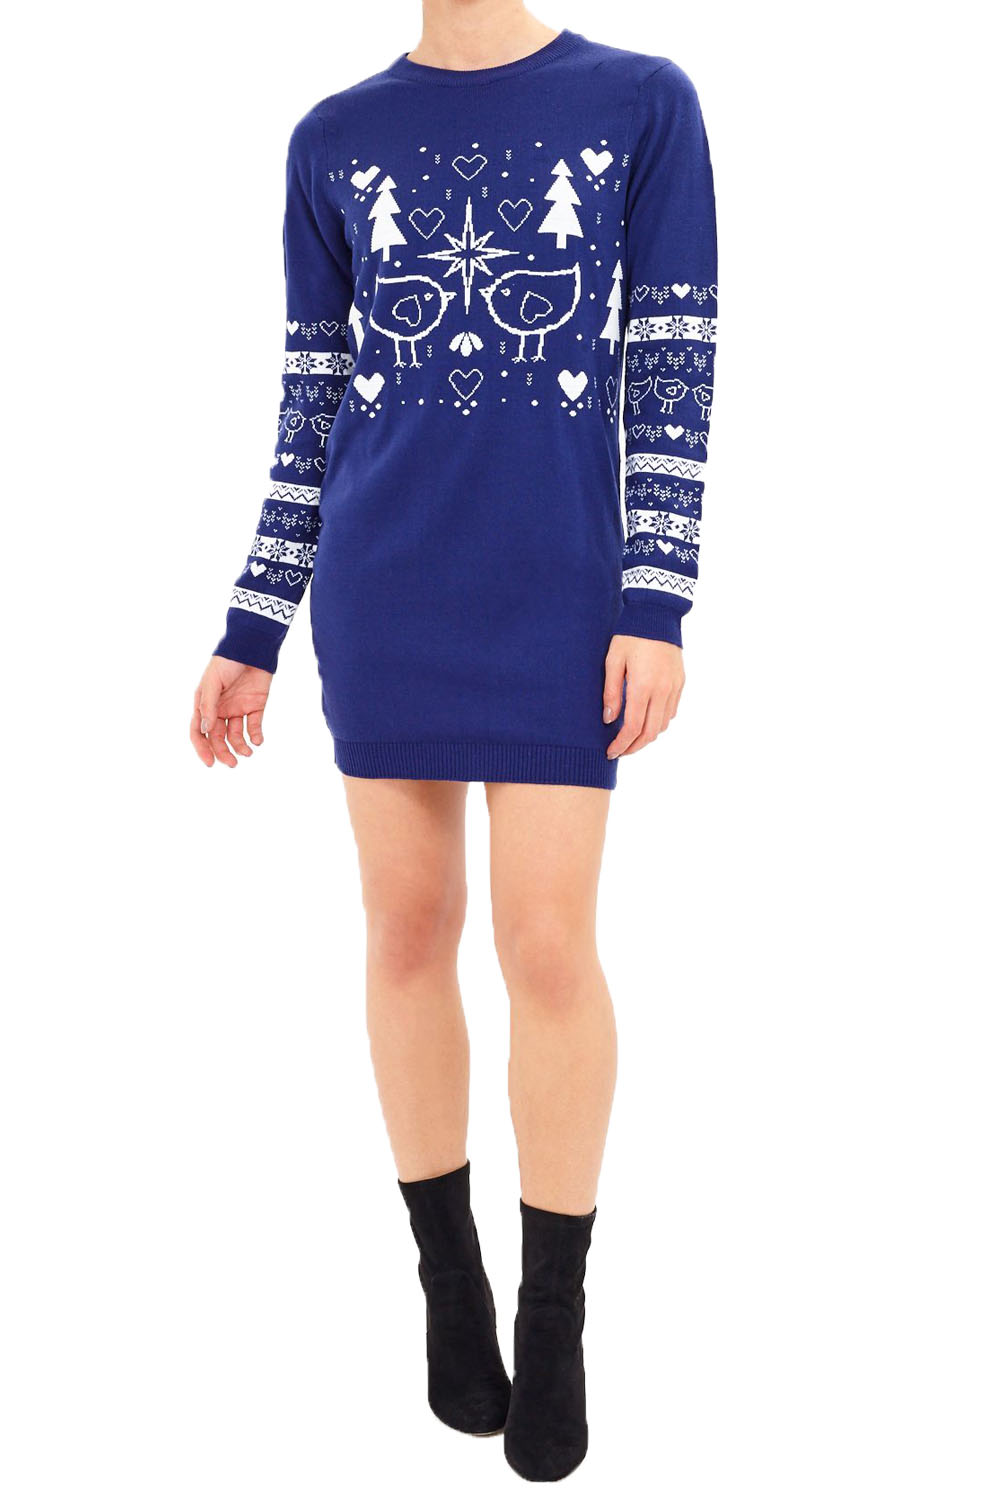 brave soul womens novelty christmas jumpers or dresses